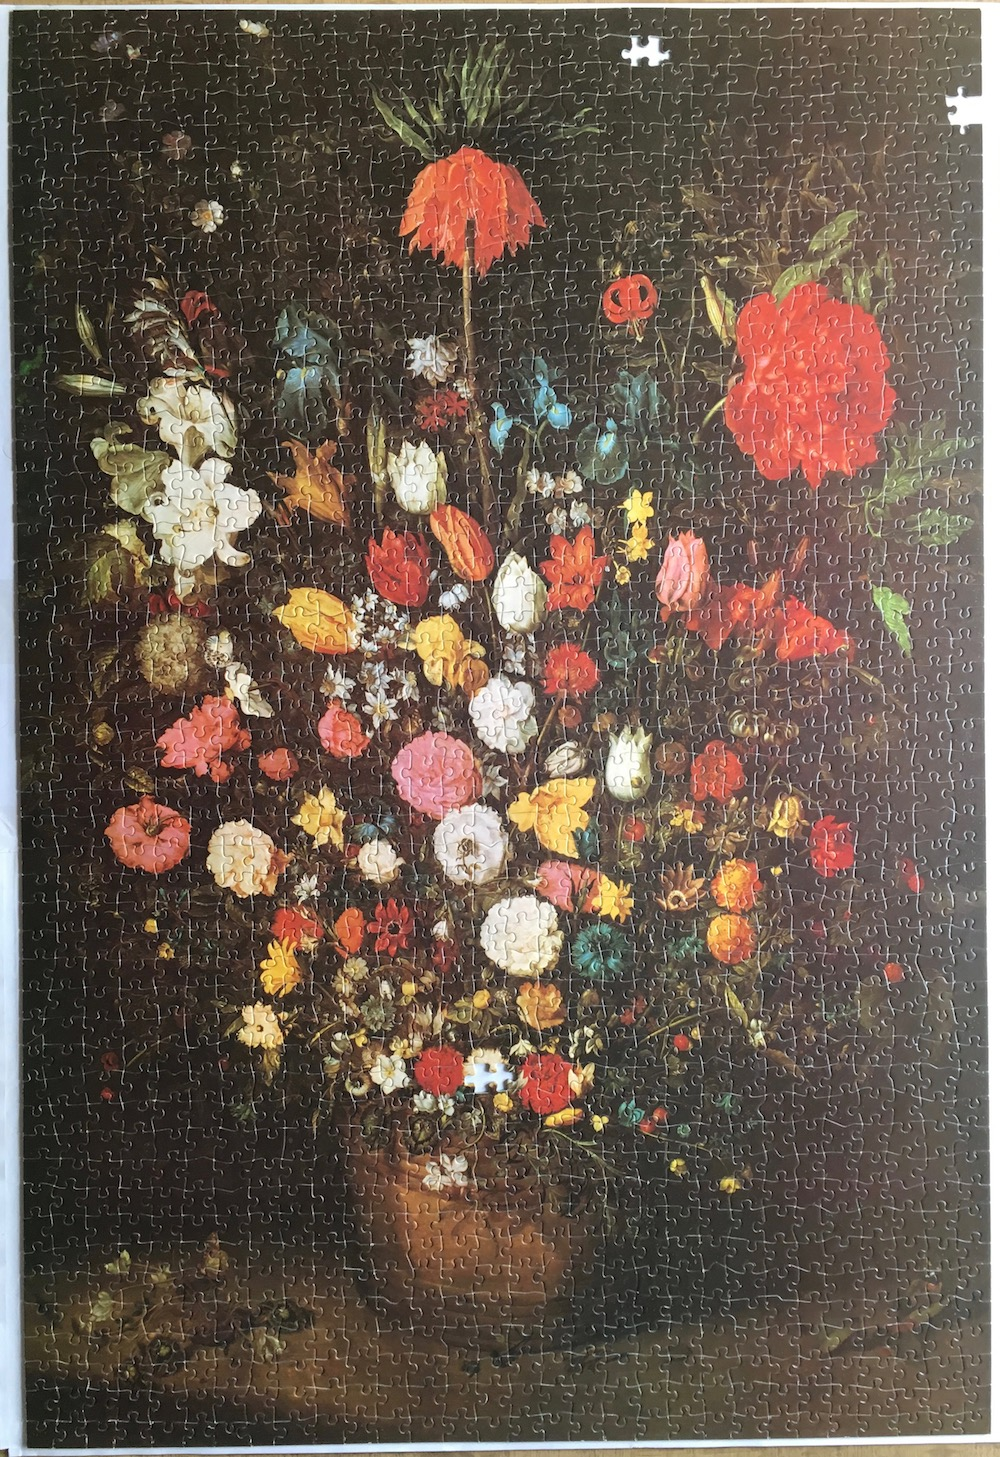 Image of the 1500, F.X. Schmid, Bouquet, Jan Brueghel the Elder, Picture of the Puzzle Assembled